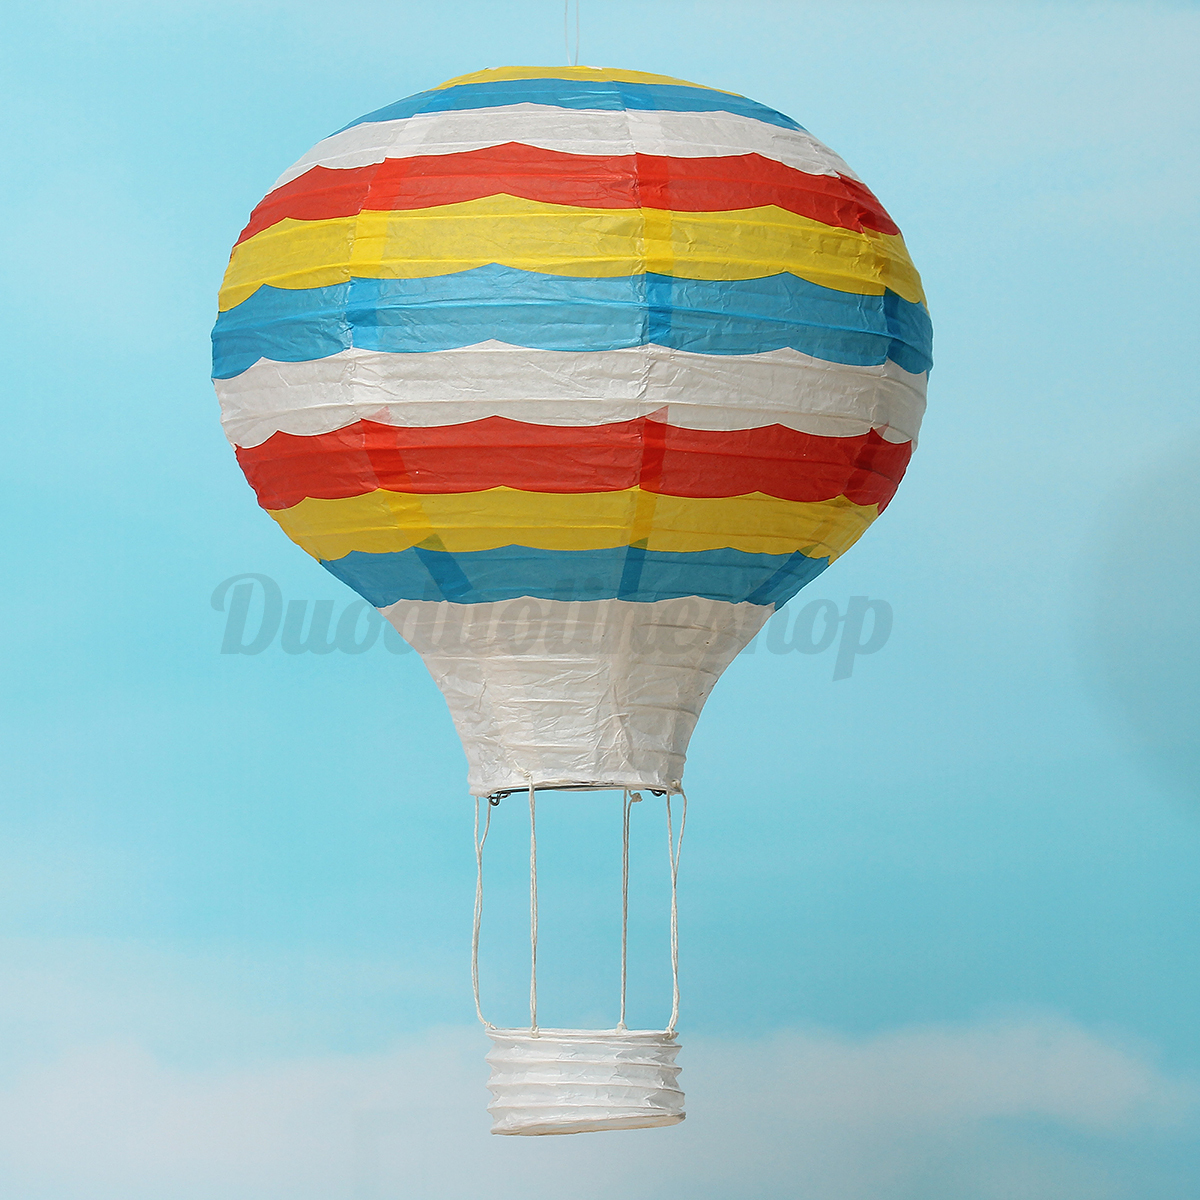 12'' Hot Air Balloon Paper Lantern Lampshade Ceiling Light